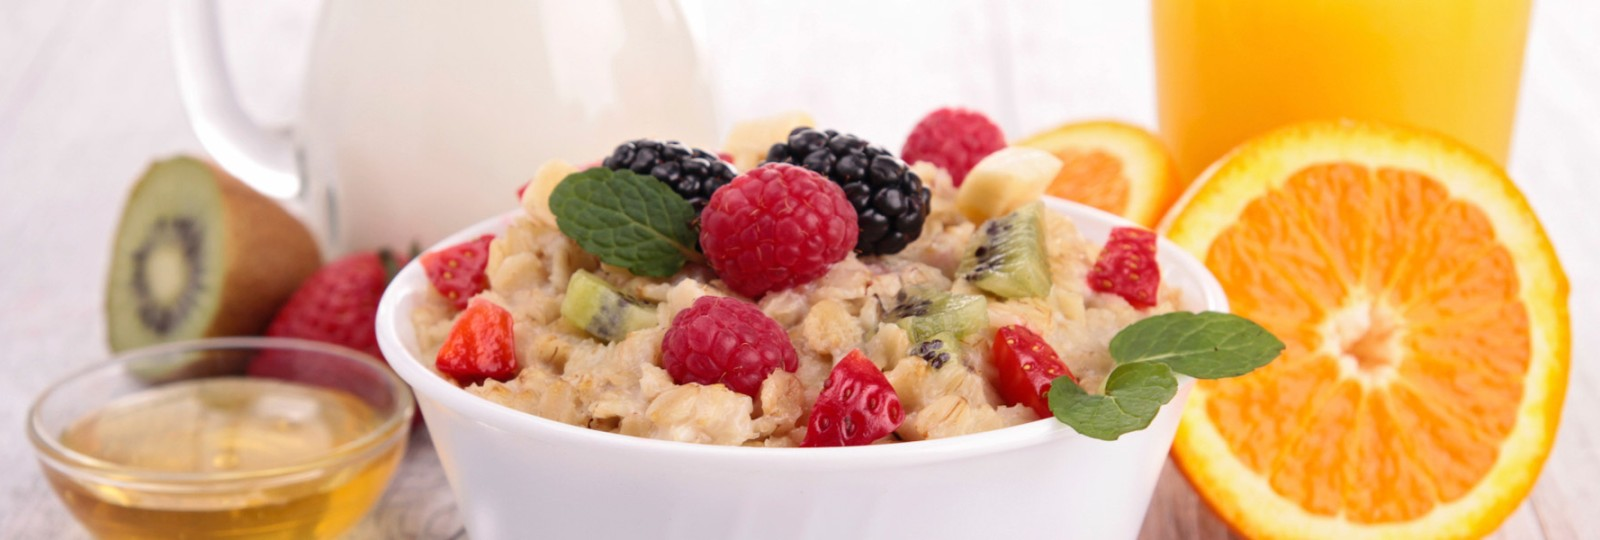 Healthy breakfast foods - fruit, orange juice, oatmeal and milk